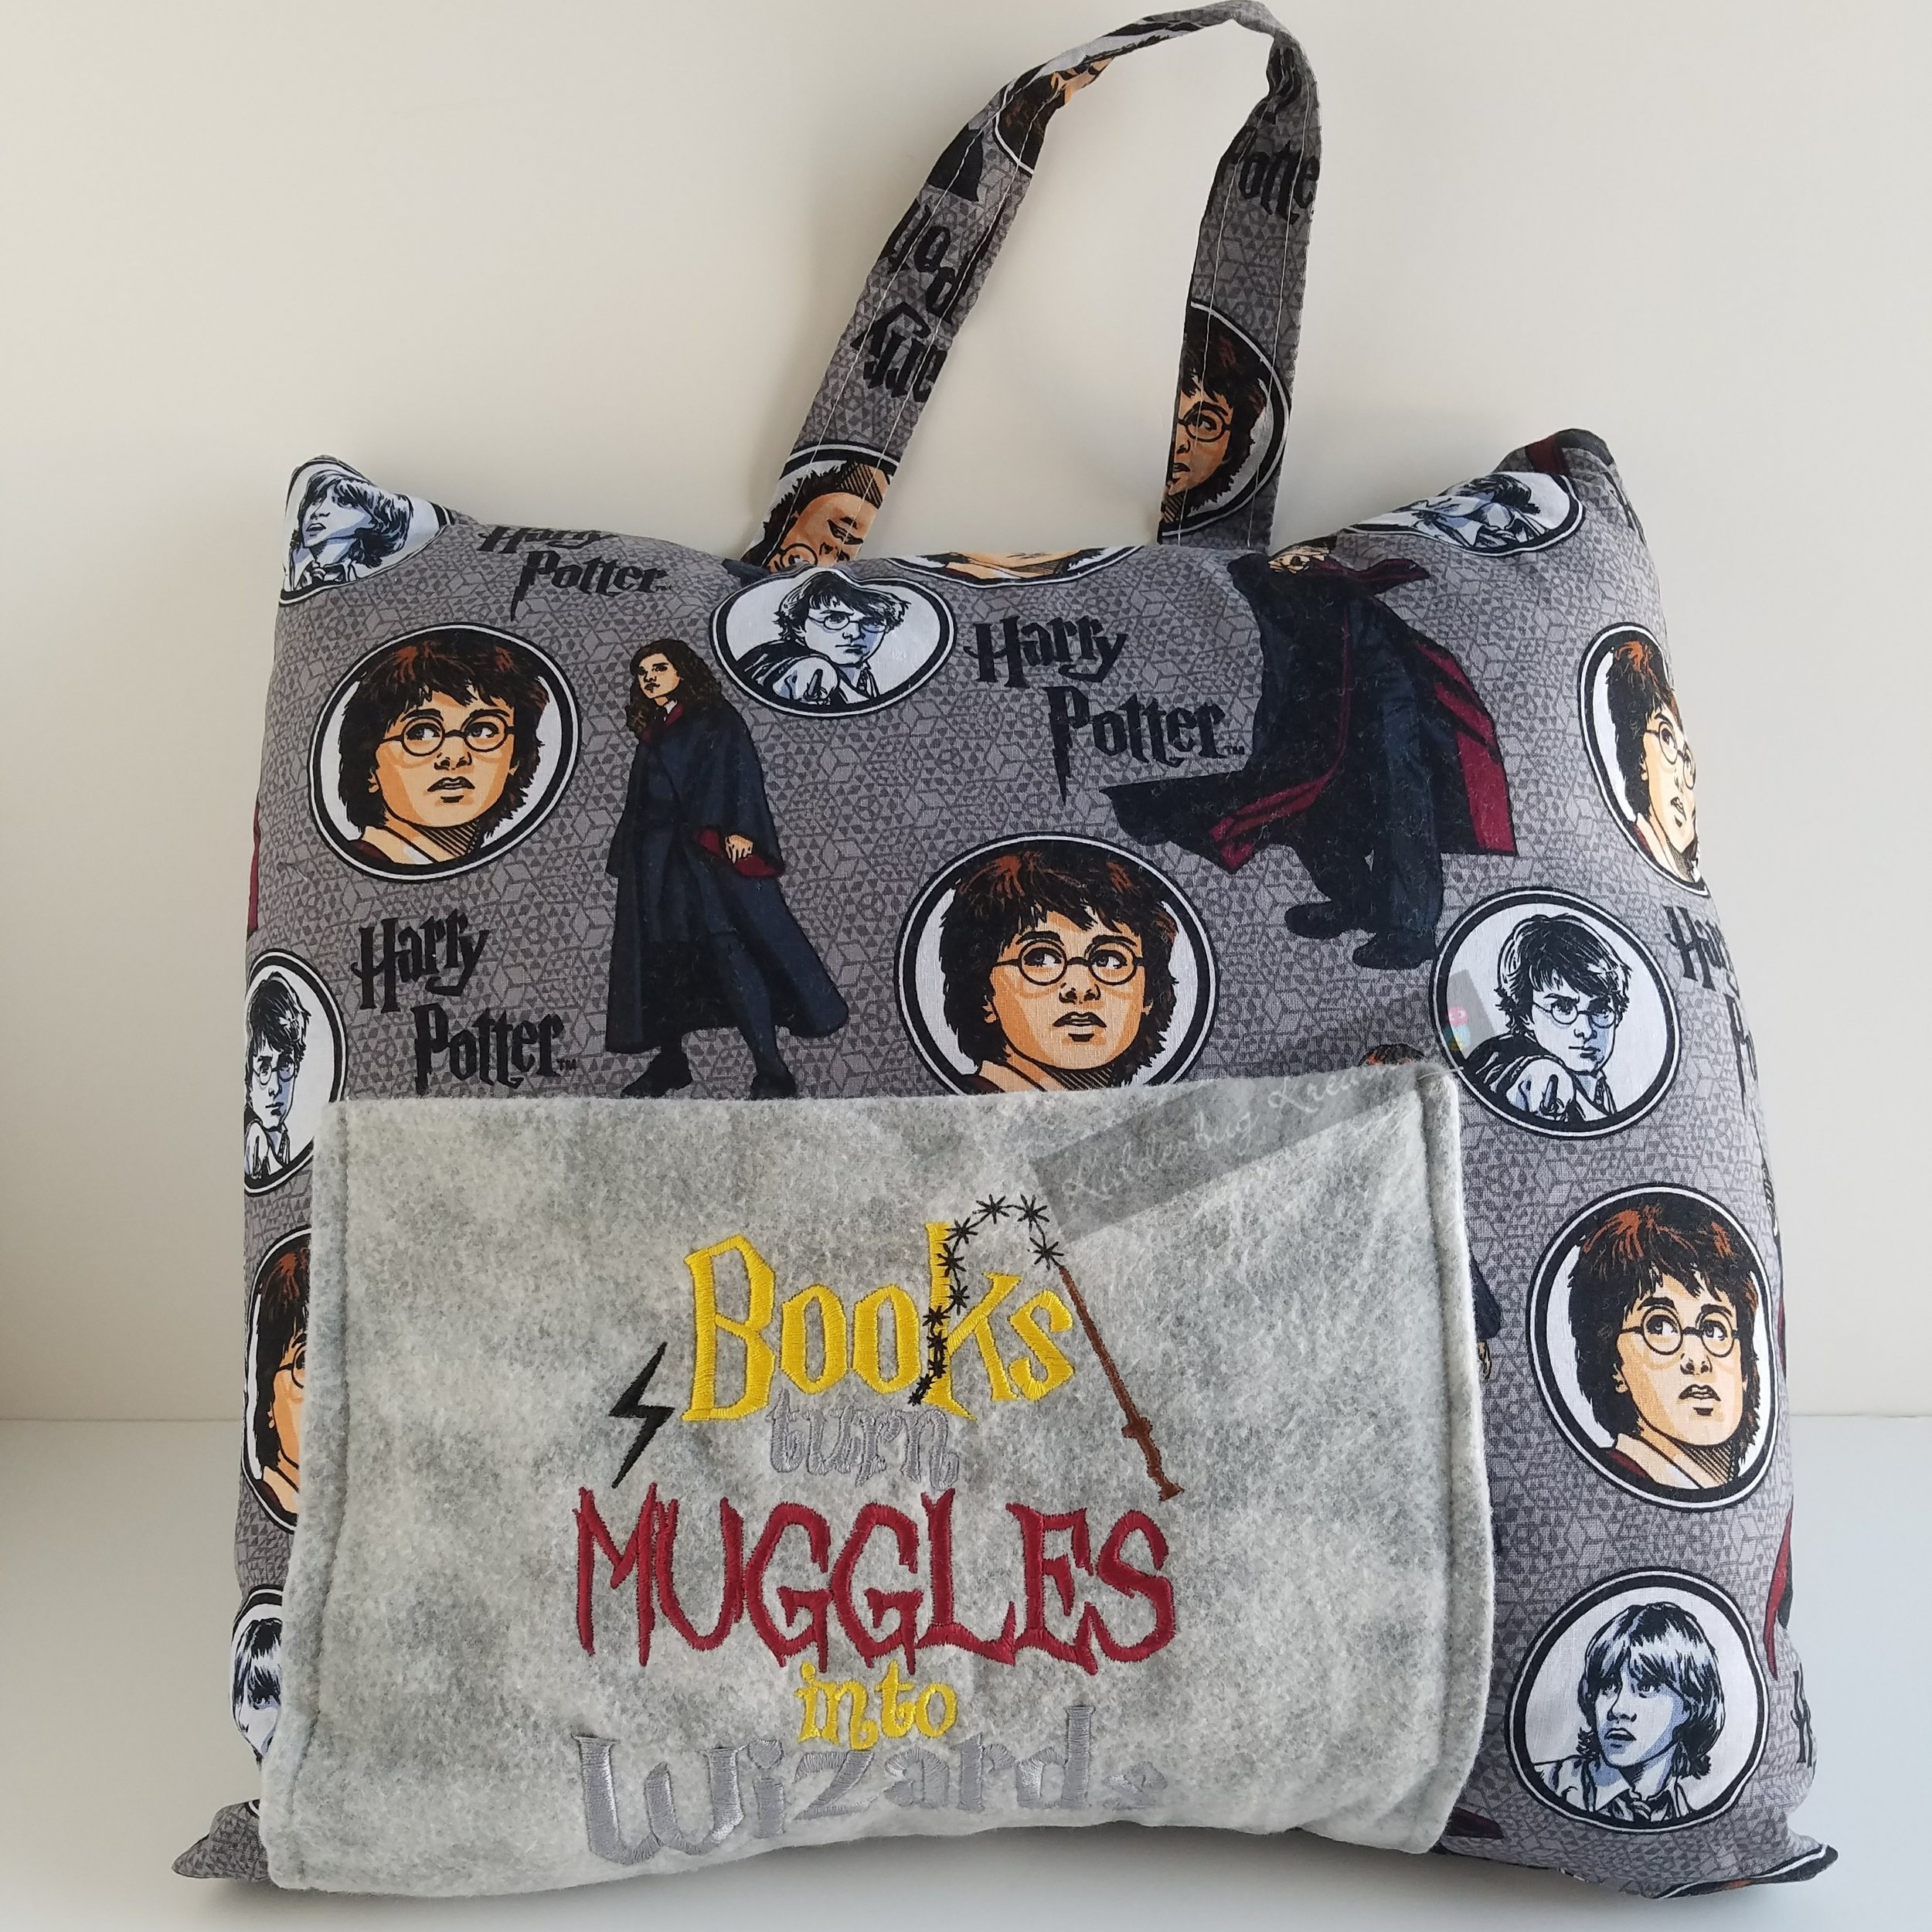 Muggles and Wizards Reading Pillow - 1. Both kids and adults will enjoy having a reading pillow to safely store the current Harry Potter book until they can resume their adventures.